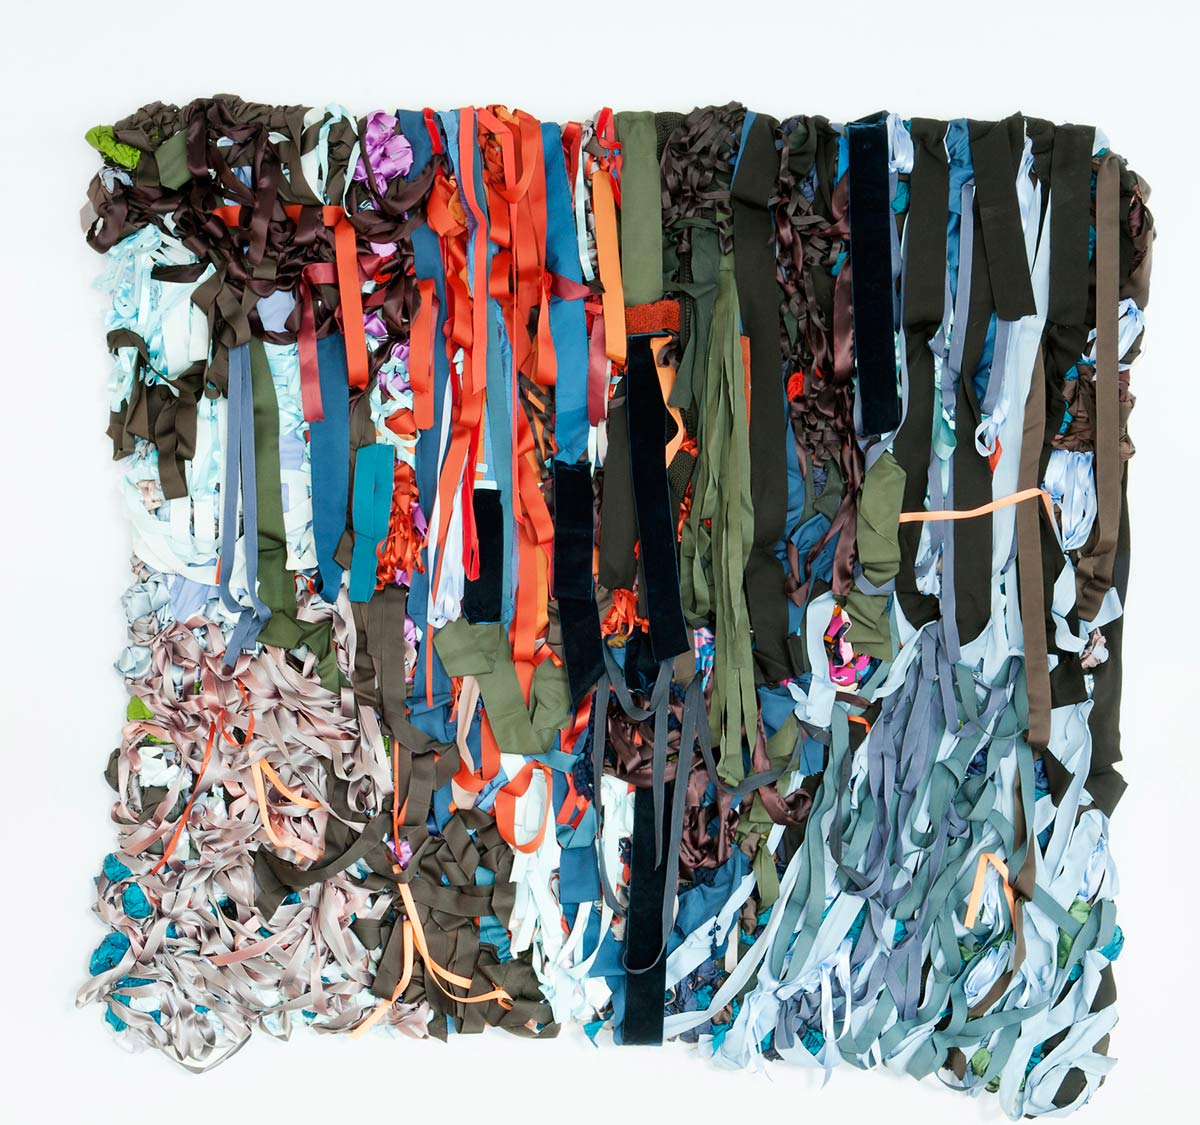 Swamp, 7ft x 6ft x 6in, fabric, ribbon, mixed media, 2013